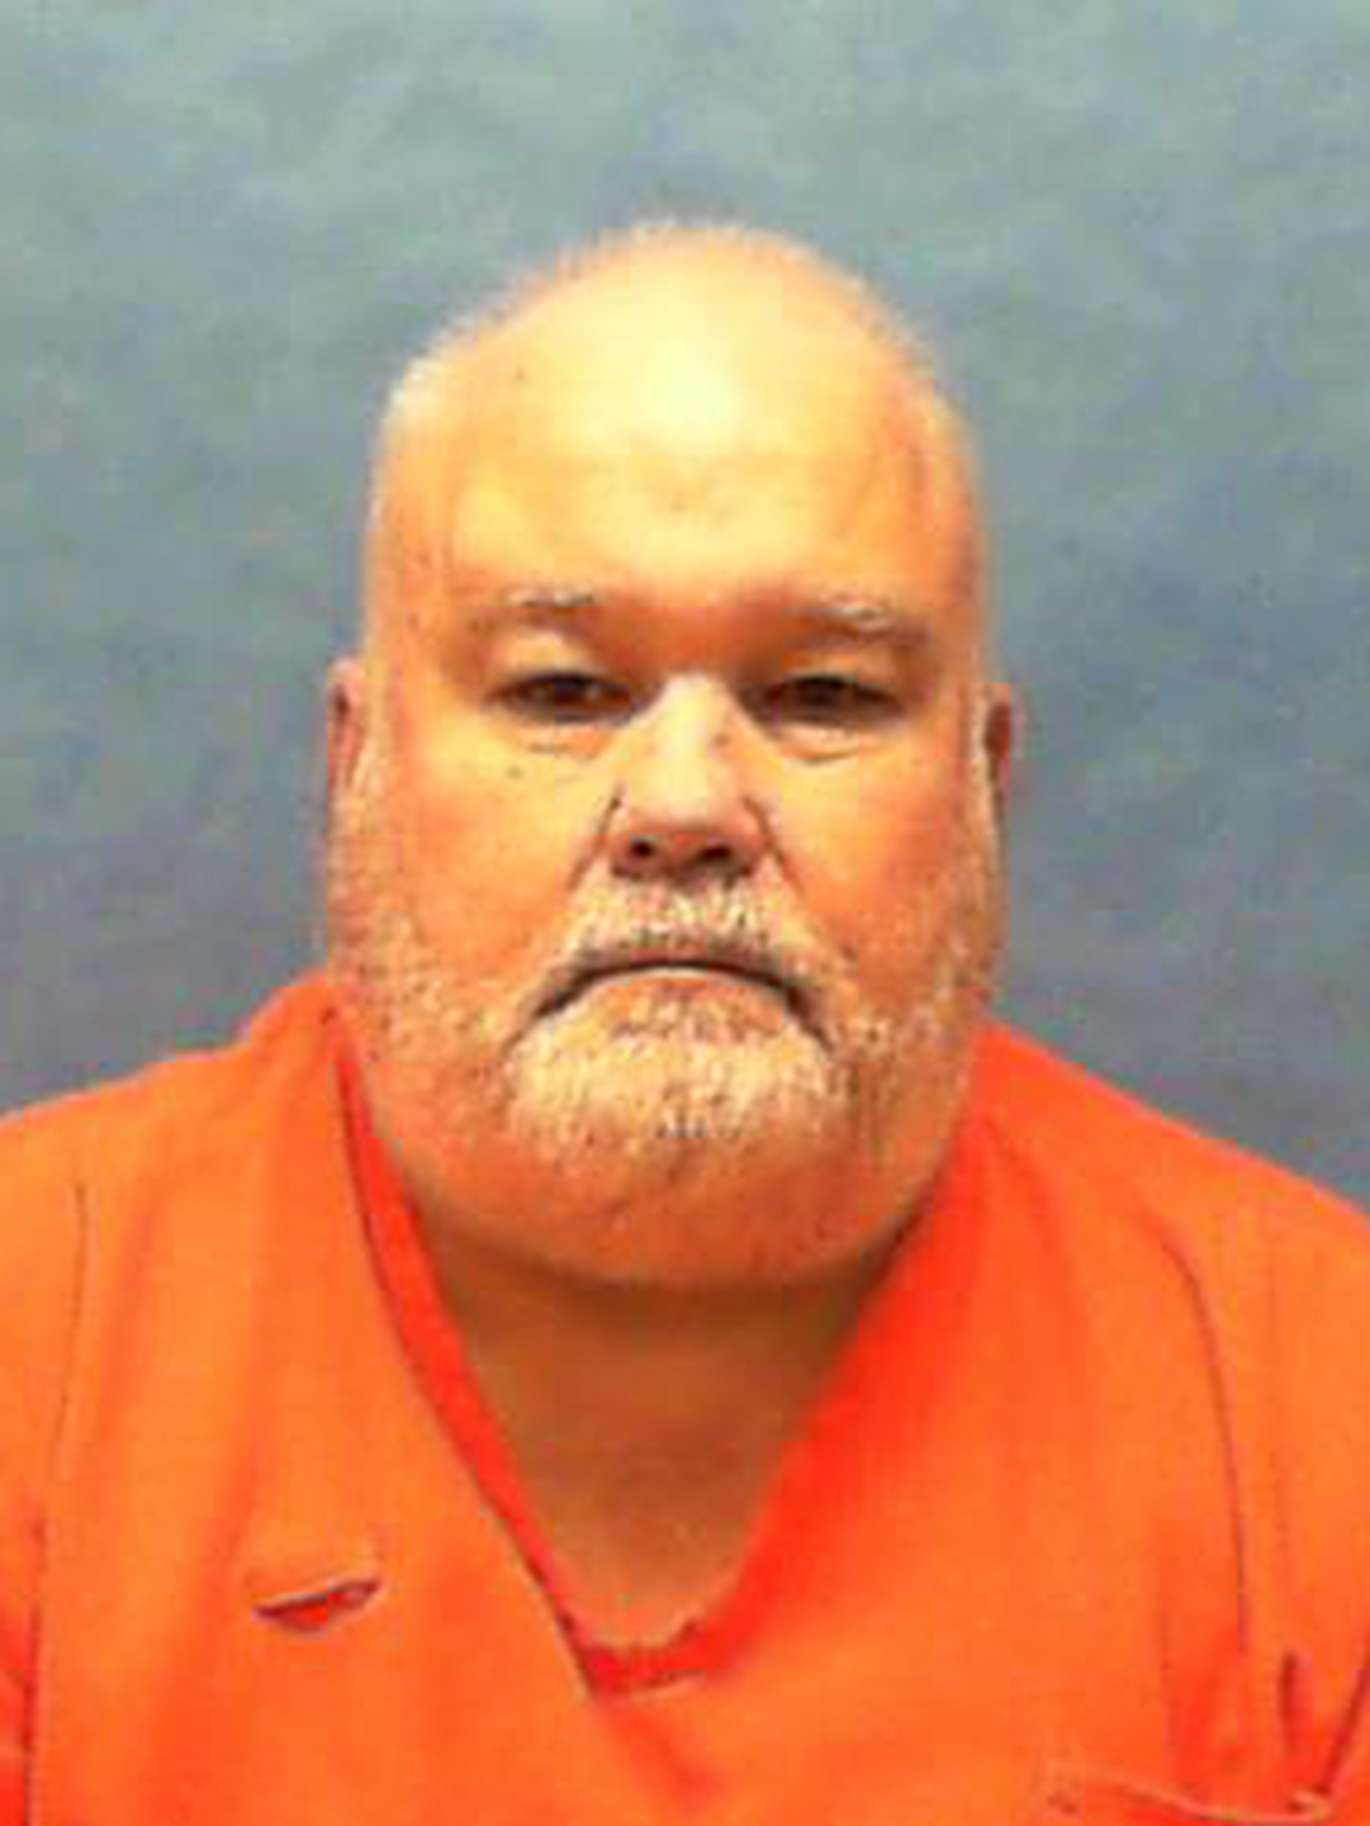 Ray Johnston was sentenced to death in 2000 and 2001 for the strangulation of two women in 1997. He started serving his sentences on August 24, 2001.